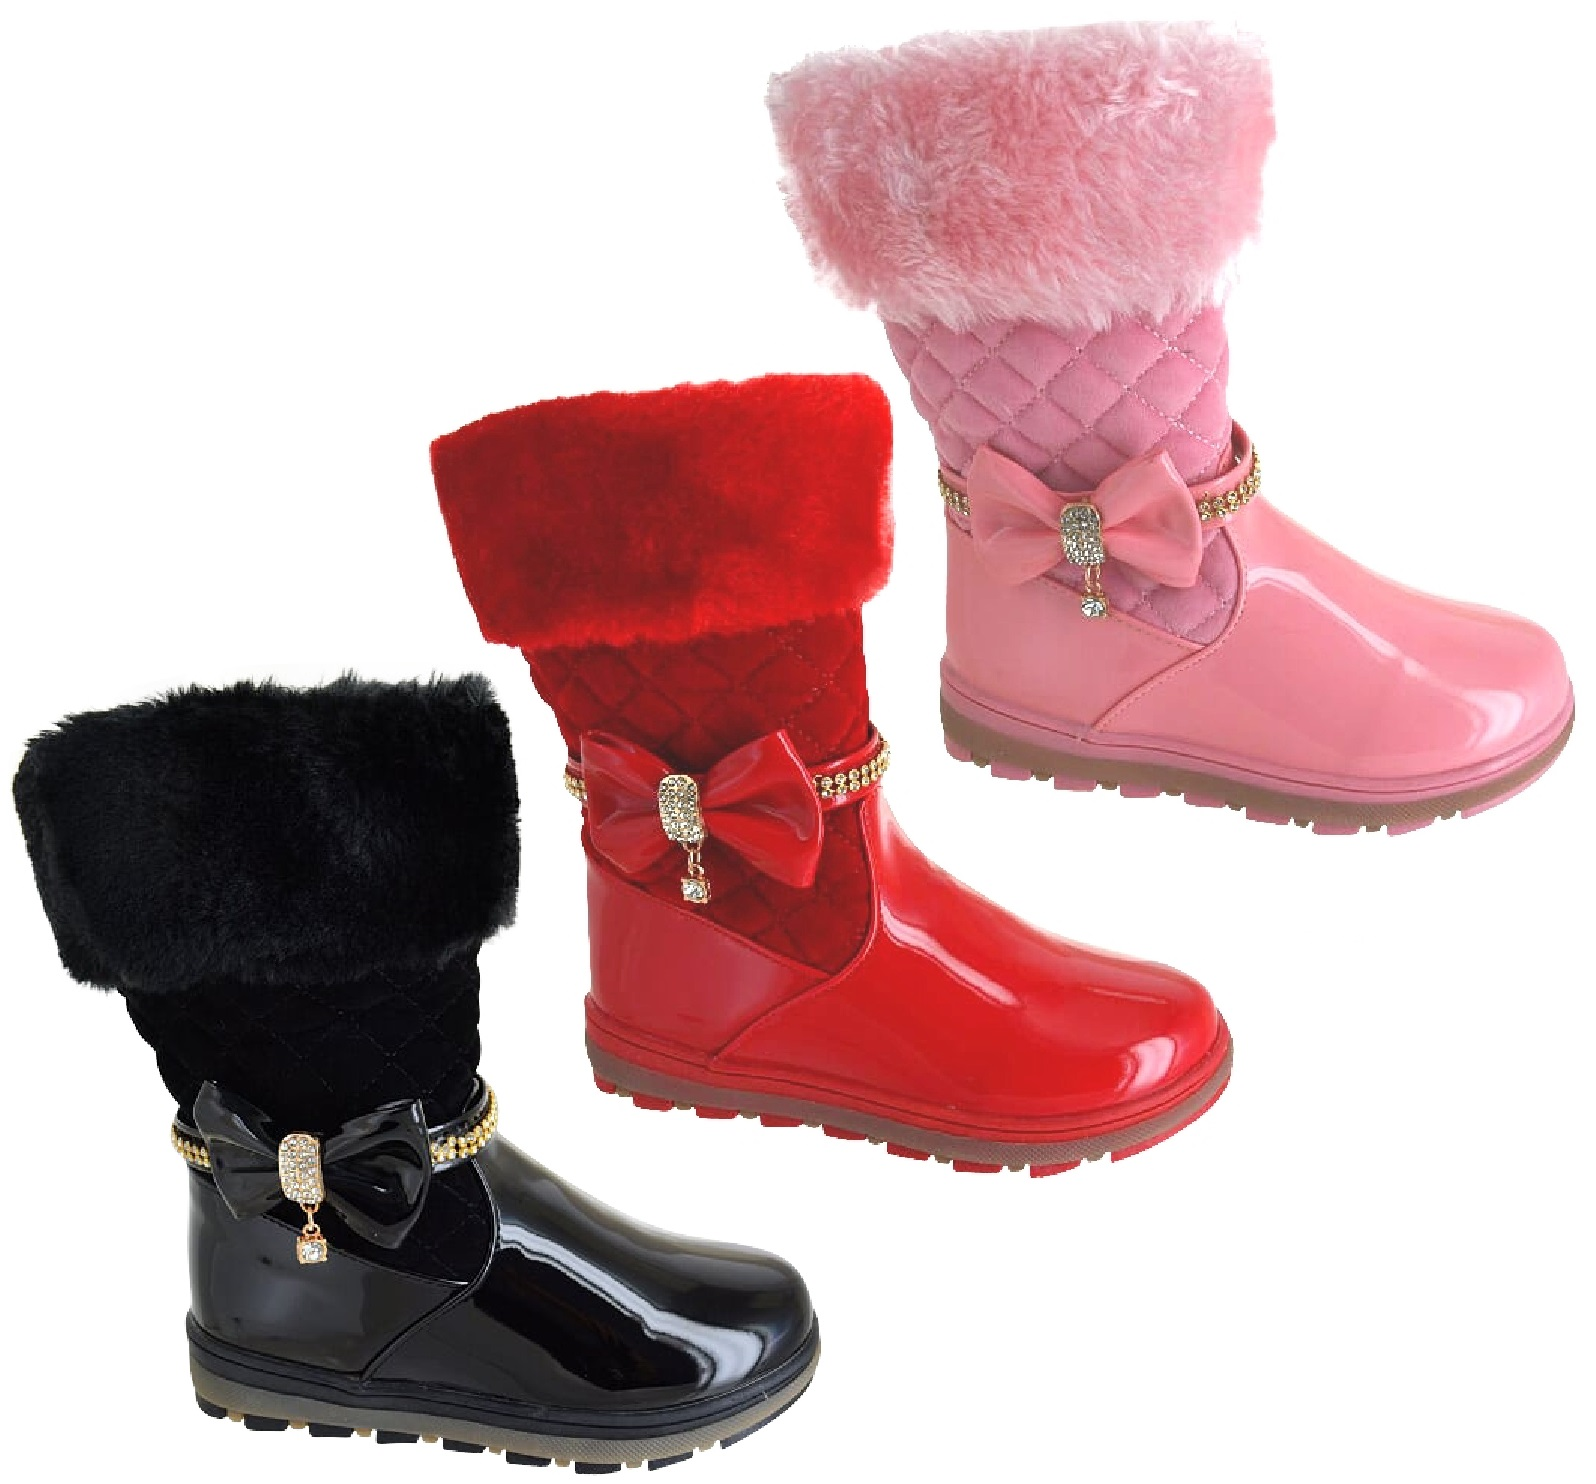 KIDS GIRLS WINTER FAUX FUR LINED GRIP SOLE  ZIP BOW MID CALF SNOW SHOES BOOTS SZ